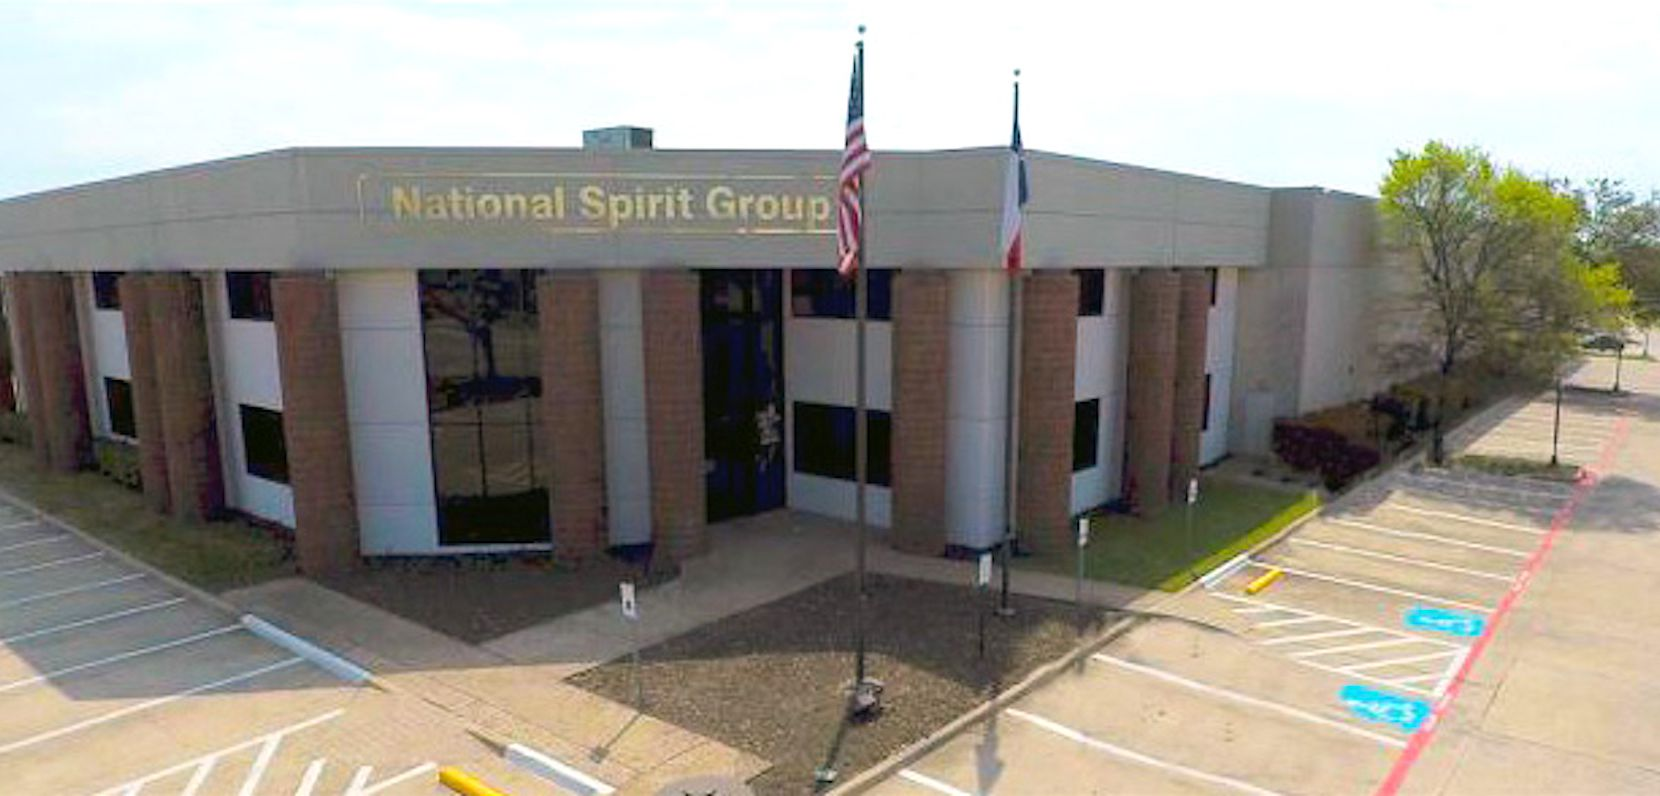 AQS Corp purchased the former National Spirit Group headquarters on Merritt Drive.